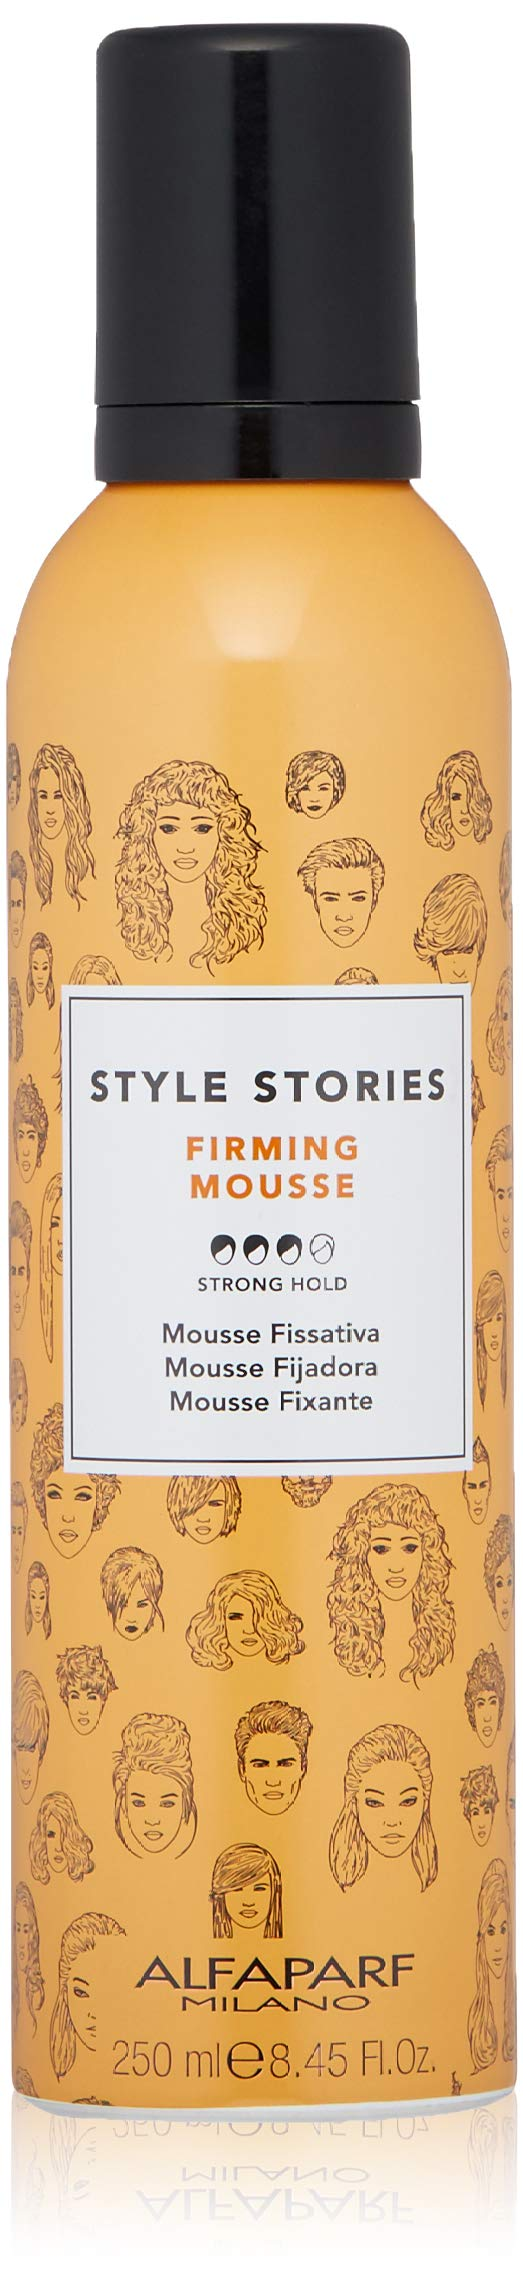 Alfaparf Milano Style Stories Firming Mousse Styling Product - Strong Hold - Long-Lasting - All Day Hold - Professional Salon Quality - 8.45 fl. oz. by Alfaparf Milano